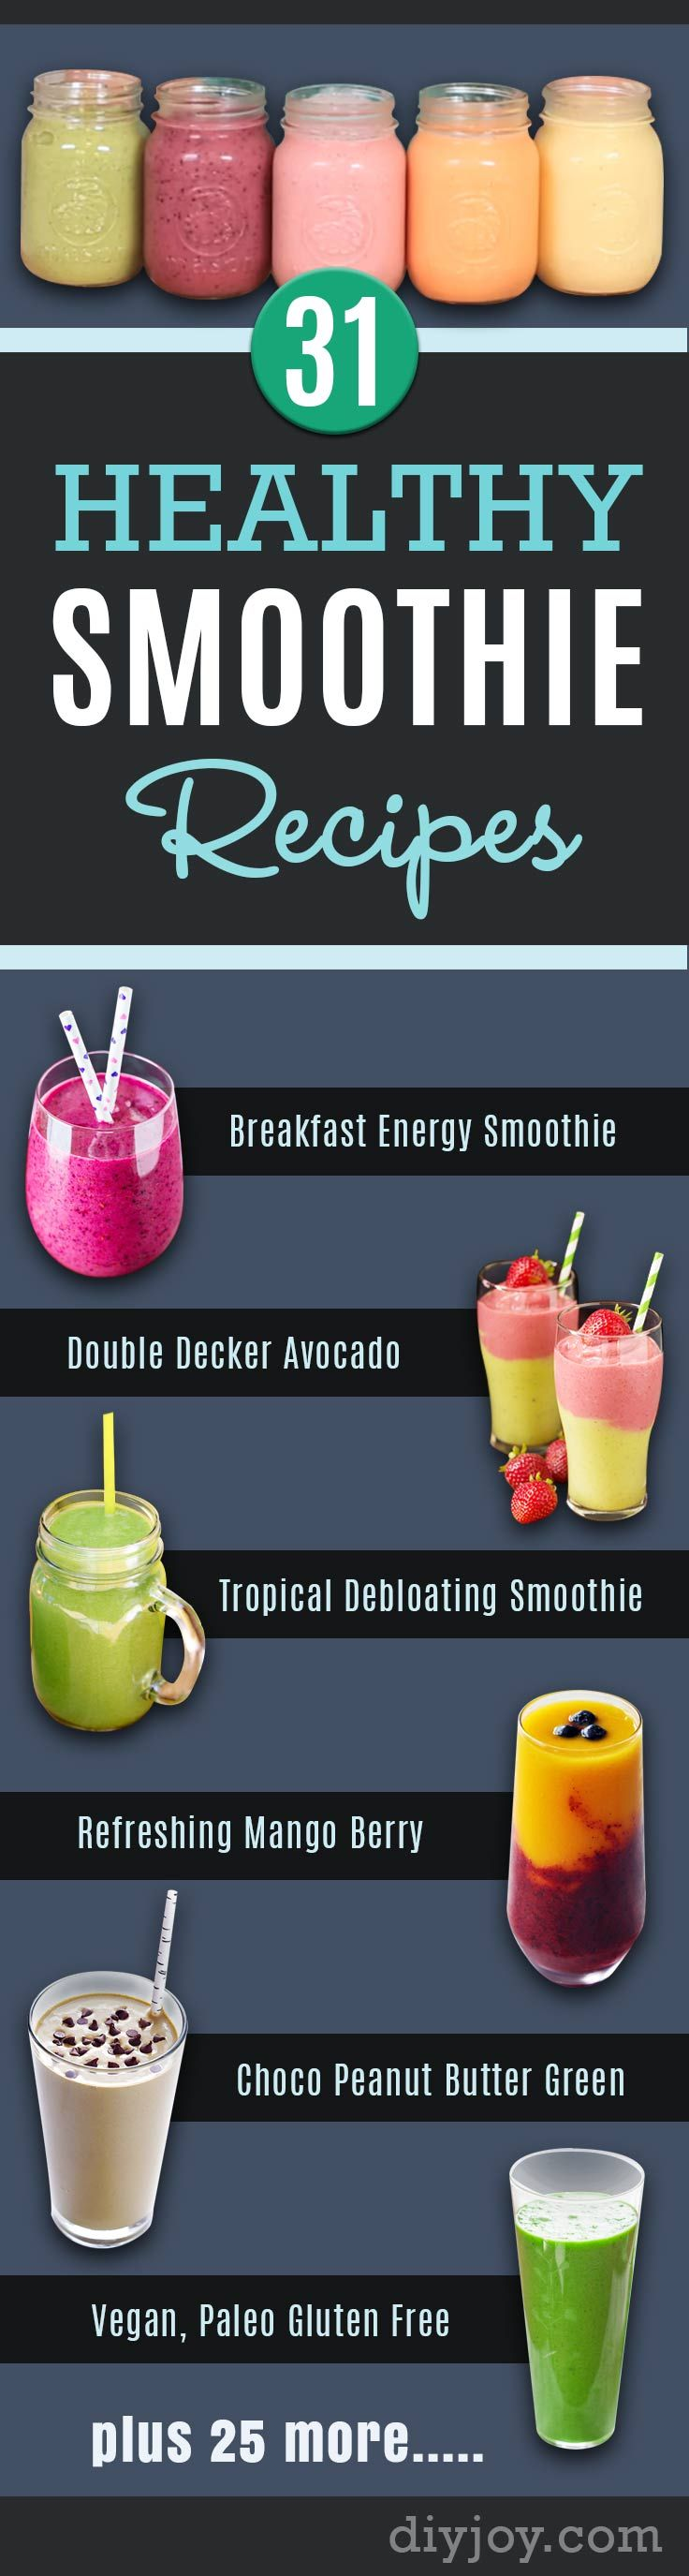 #31 Healthy Smoothie Recipes - Best Smoothies for Breakfast, Lunch, Dinner and Snack ! LowFat and Hi Protein Mixes !